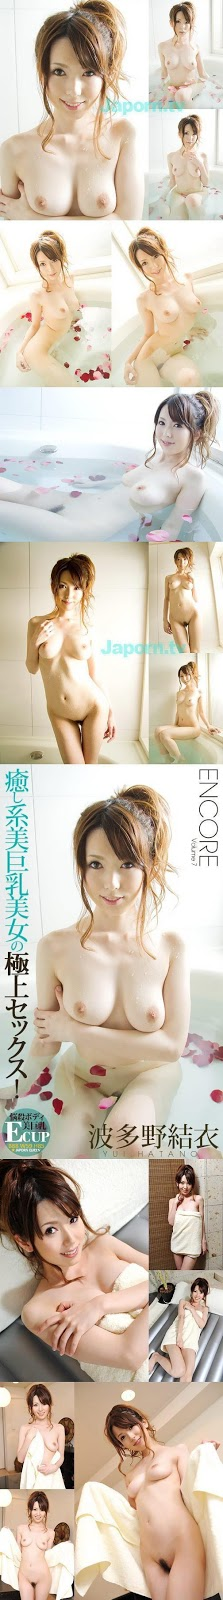 Encore Vol. 7 – Yui Hatano (S2MBD-007) (Blu-Ray), Taiwan Cele-brity Sex Scandal, Sex-Scandal.Us, hot sex scandal, nude girls, hot girls, Best Girl, Singapore Scandal, Korean Scandal, Japan Scandal